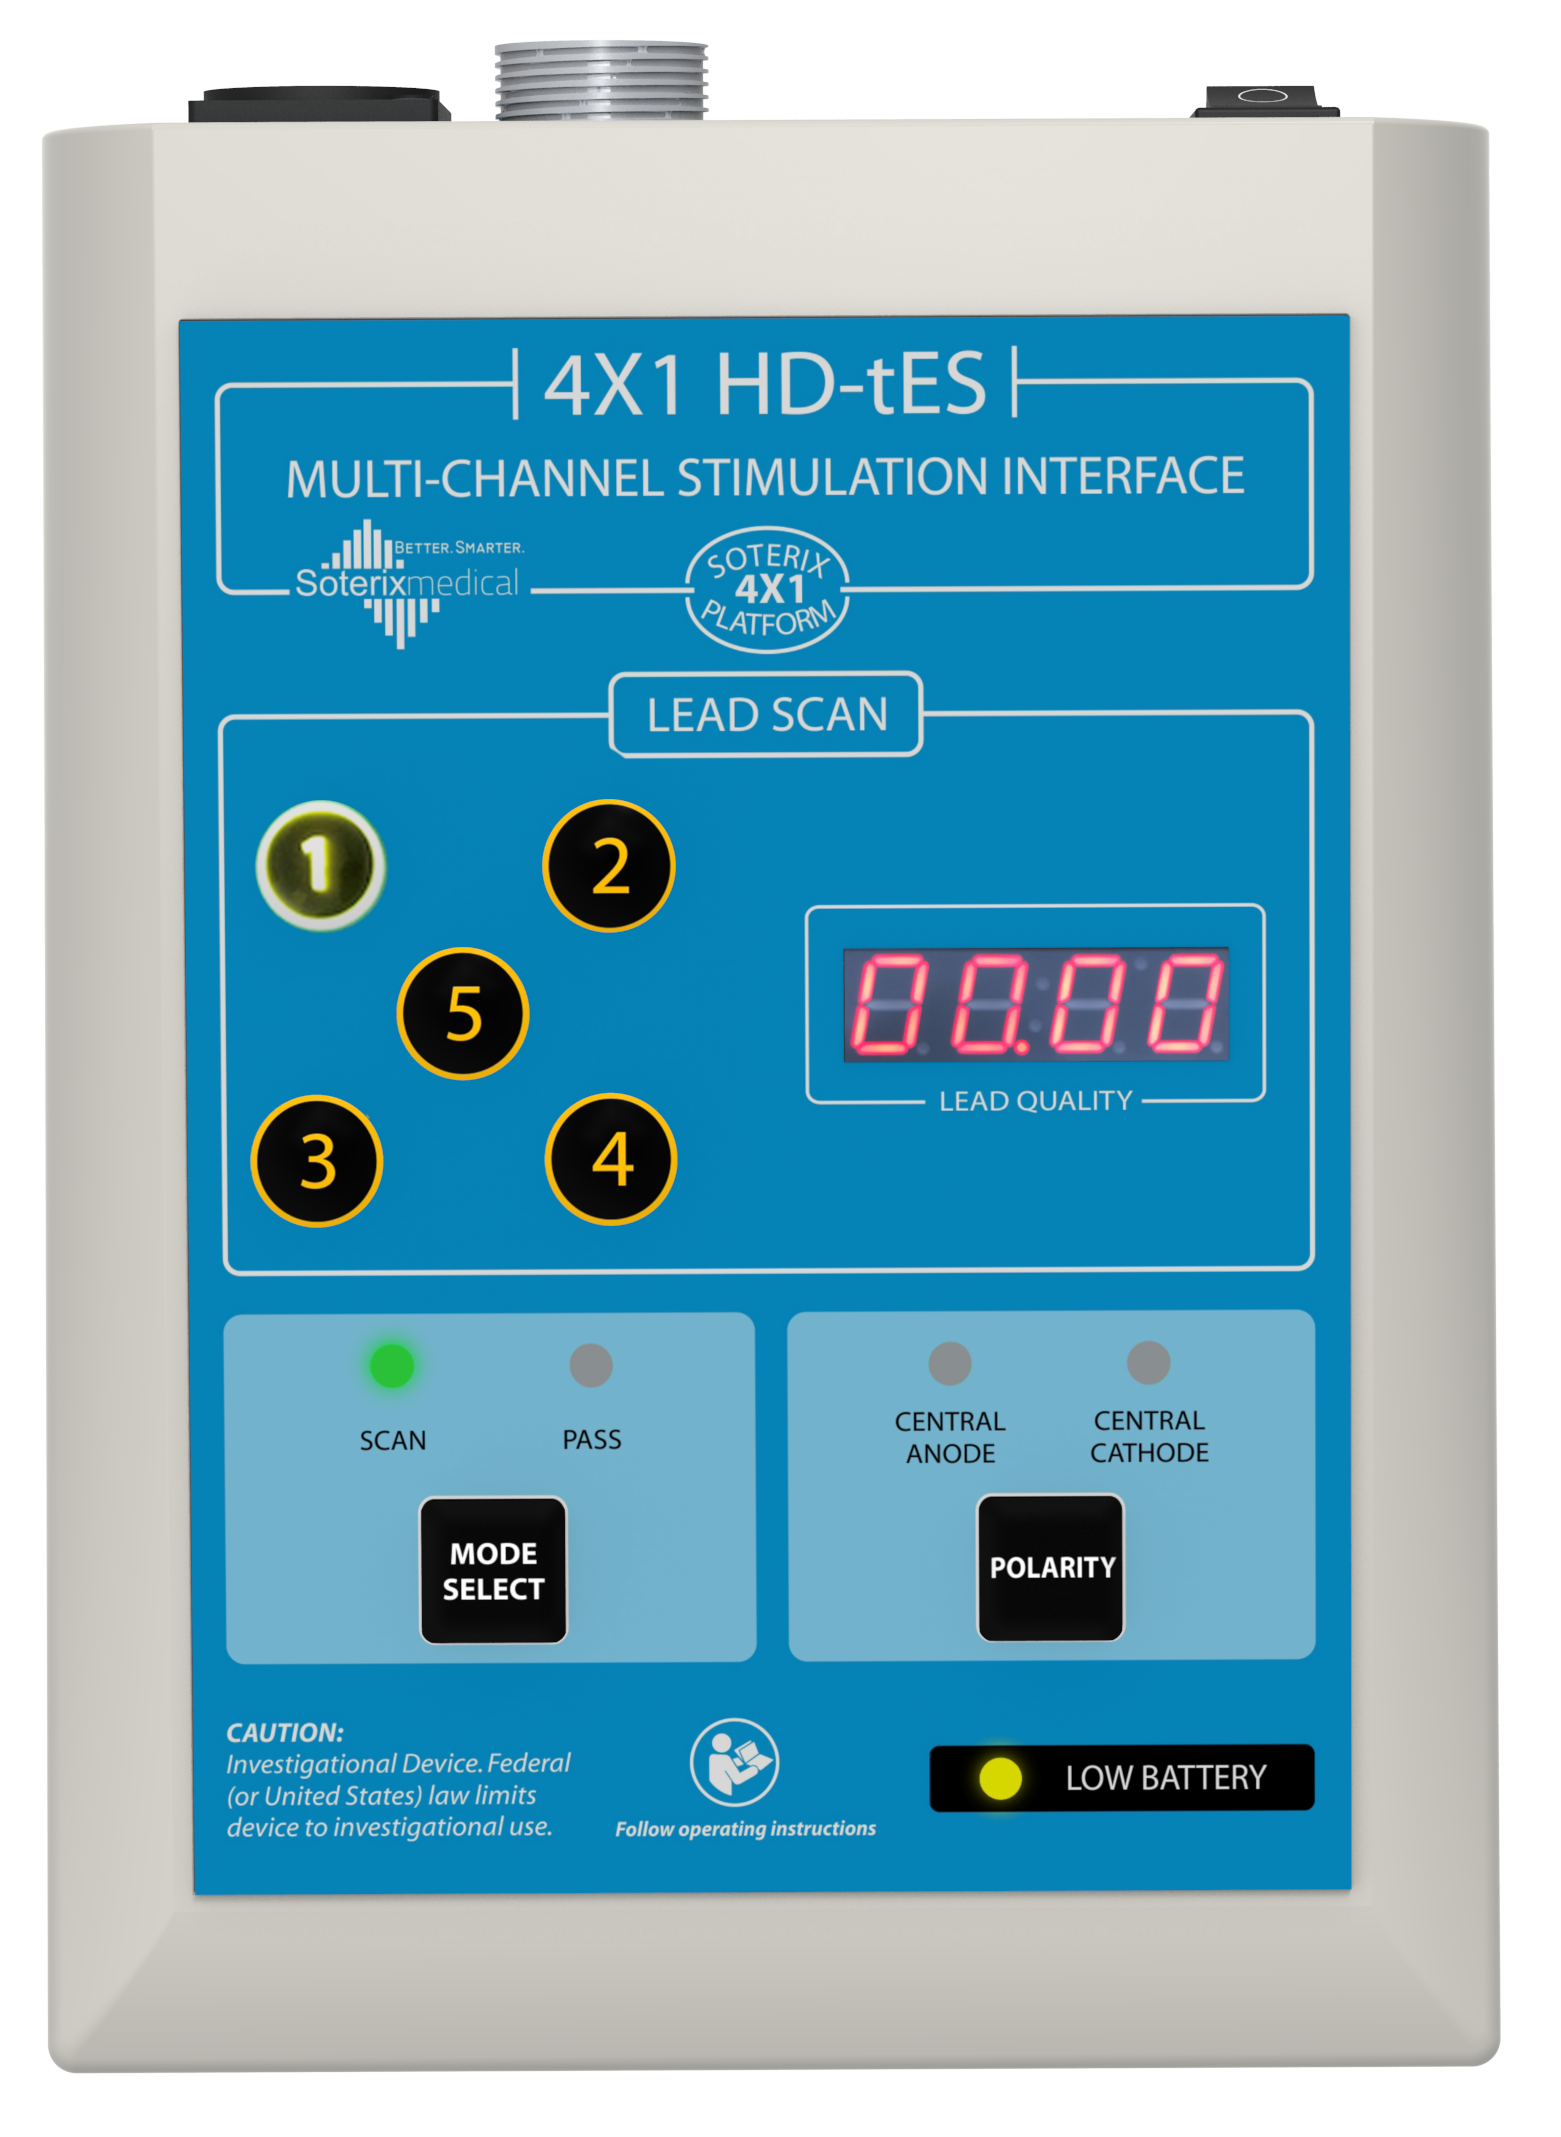 4×1 HD-tDCS Adaptor